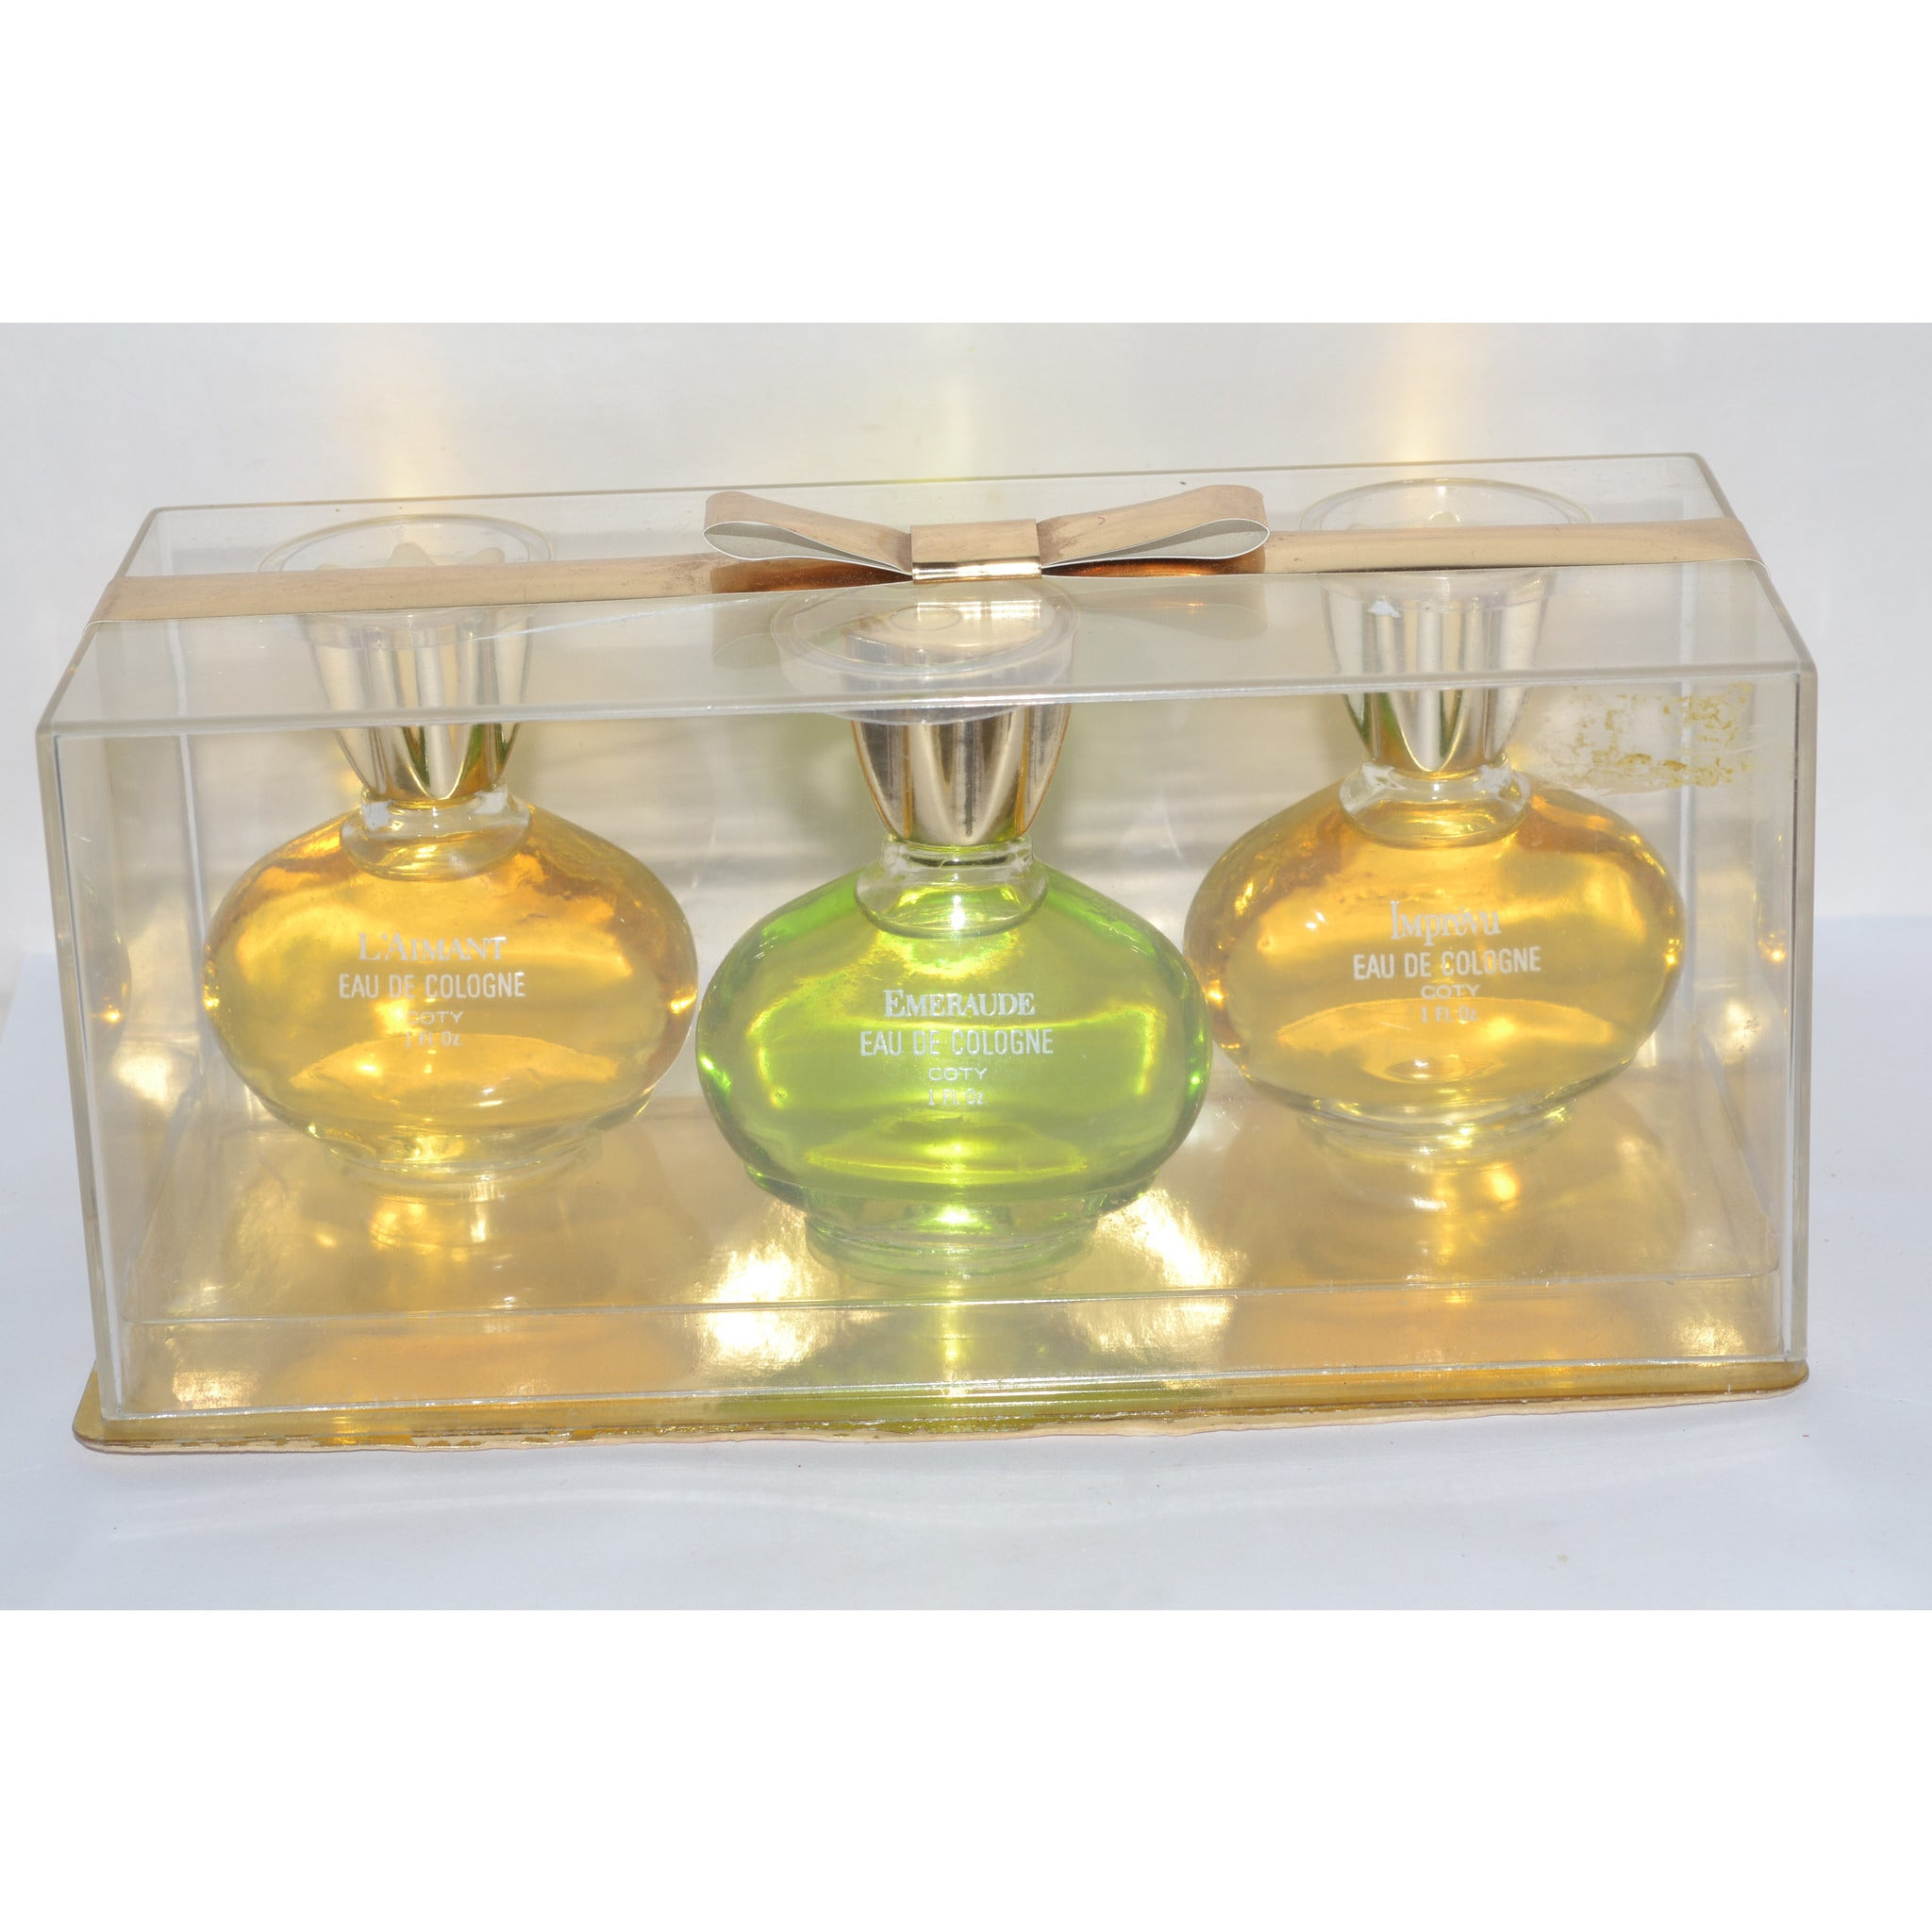 Vintage Coty Cologne Set